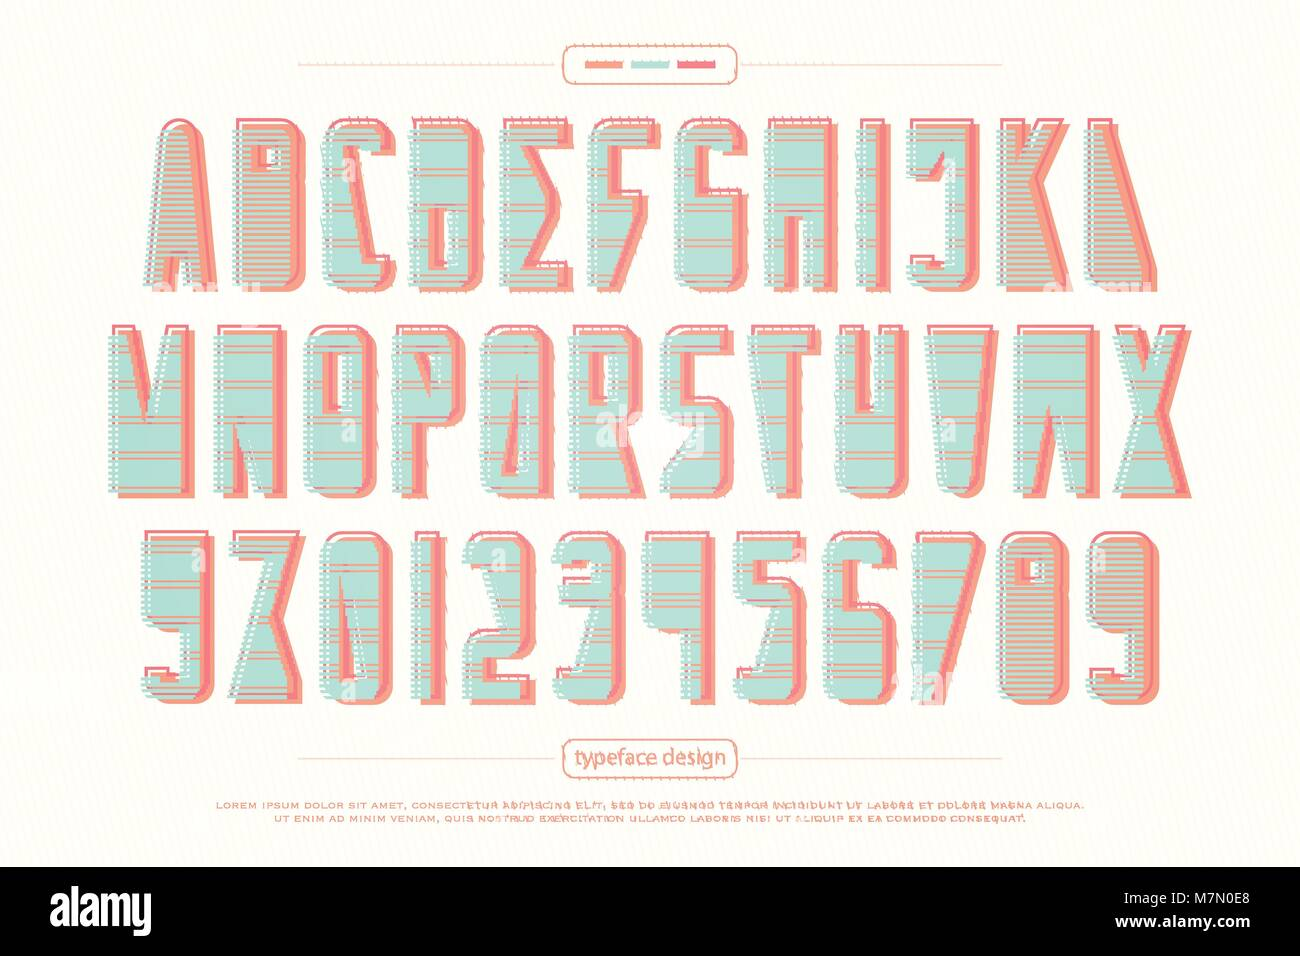 Urban Style Alphabet Letters And Numbers Vector Trendy Font Type Design Retro Lettering Symbols Stylish Geometric Typesetting Template